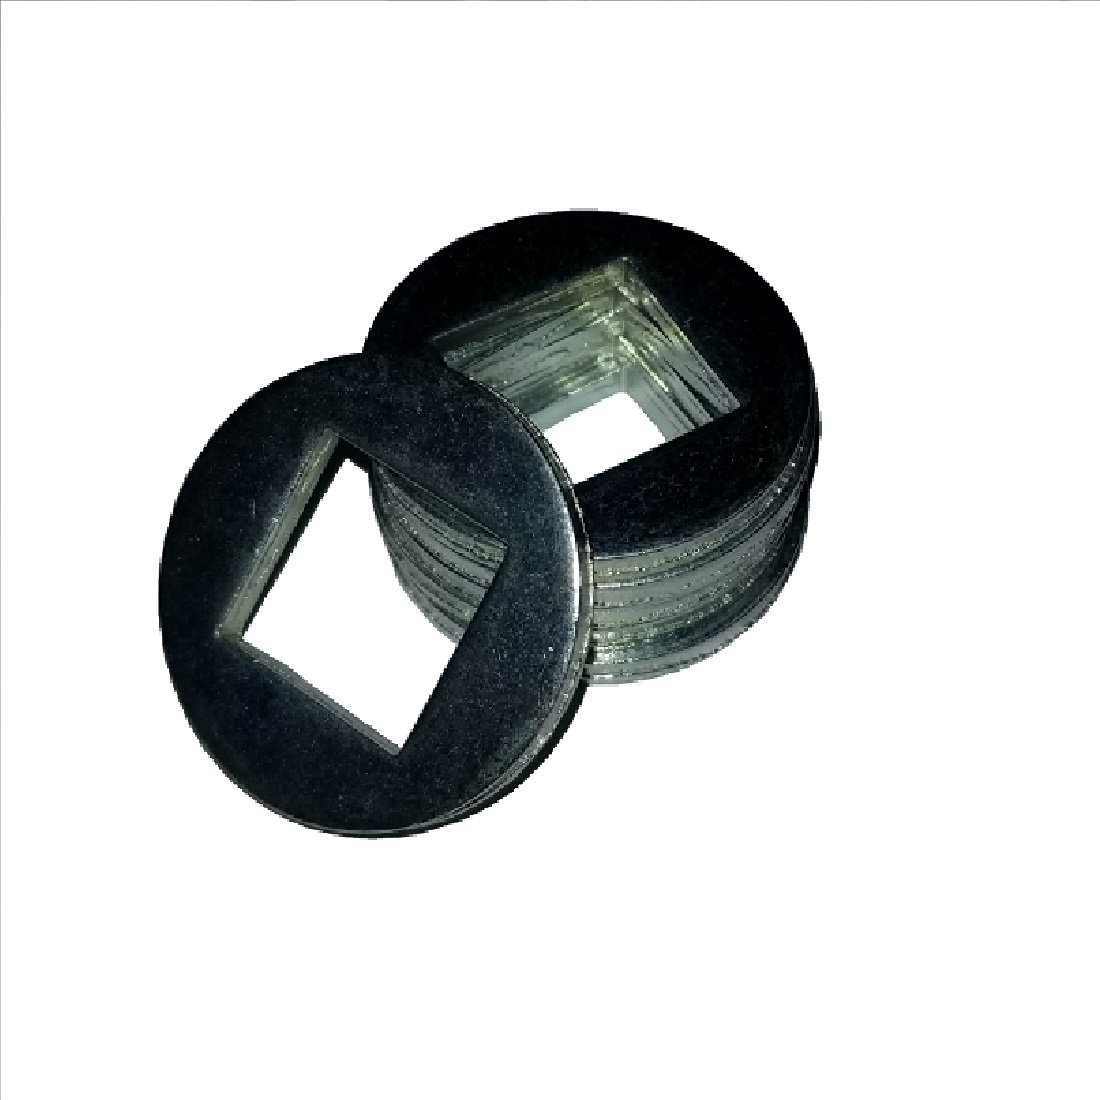 Square ID Washer - 0.594 ID, 1.250 OD, 0.105 Thick, Low Carbon Steel - Soft, Zinc & Yellow